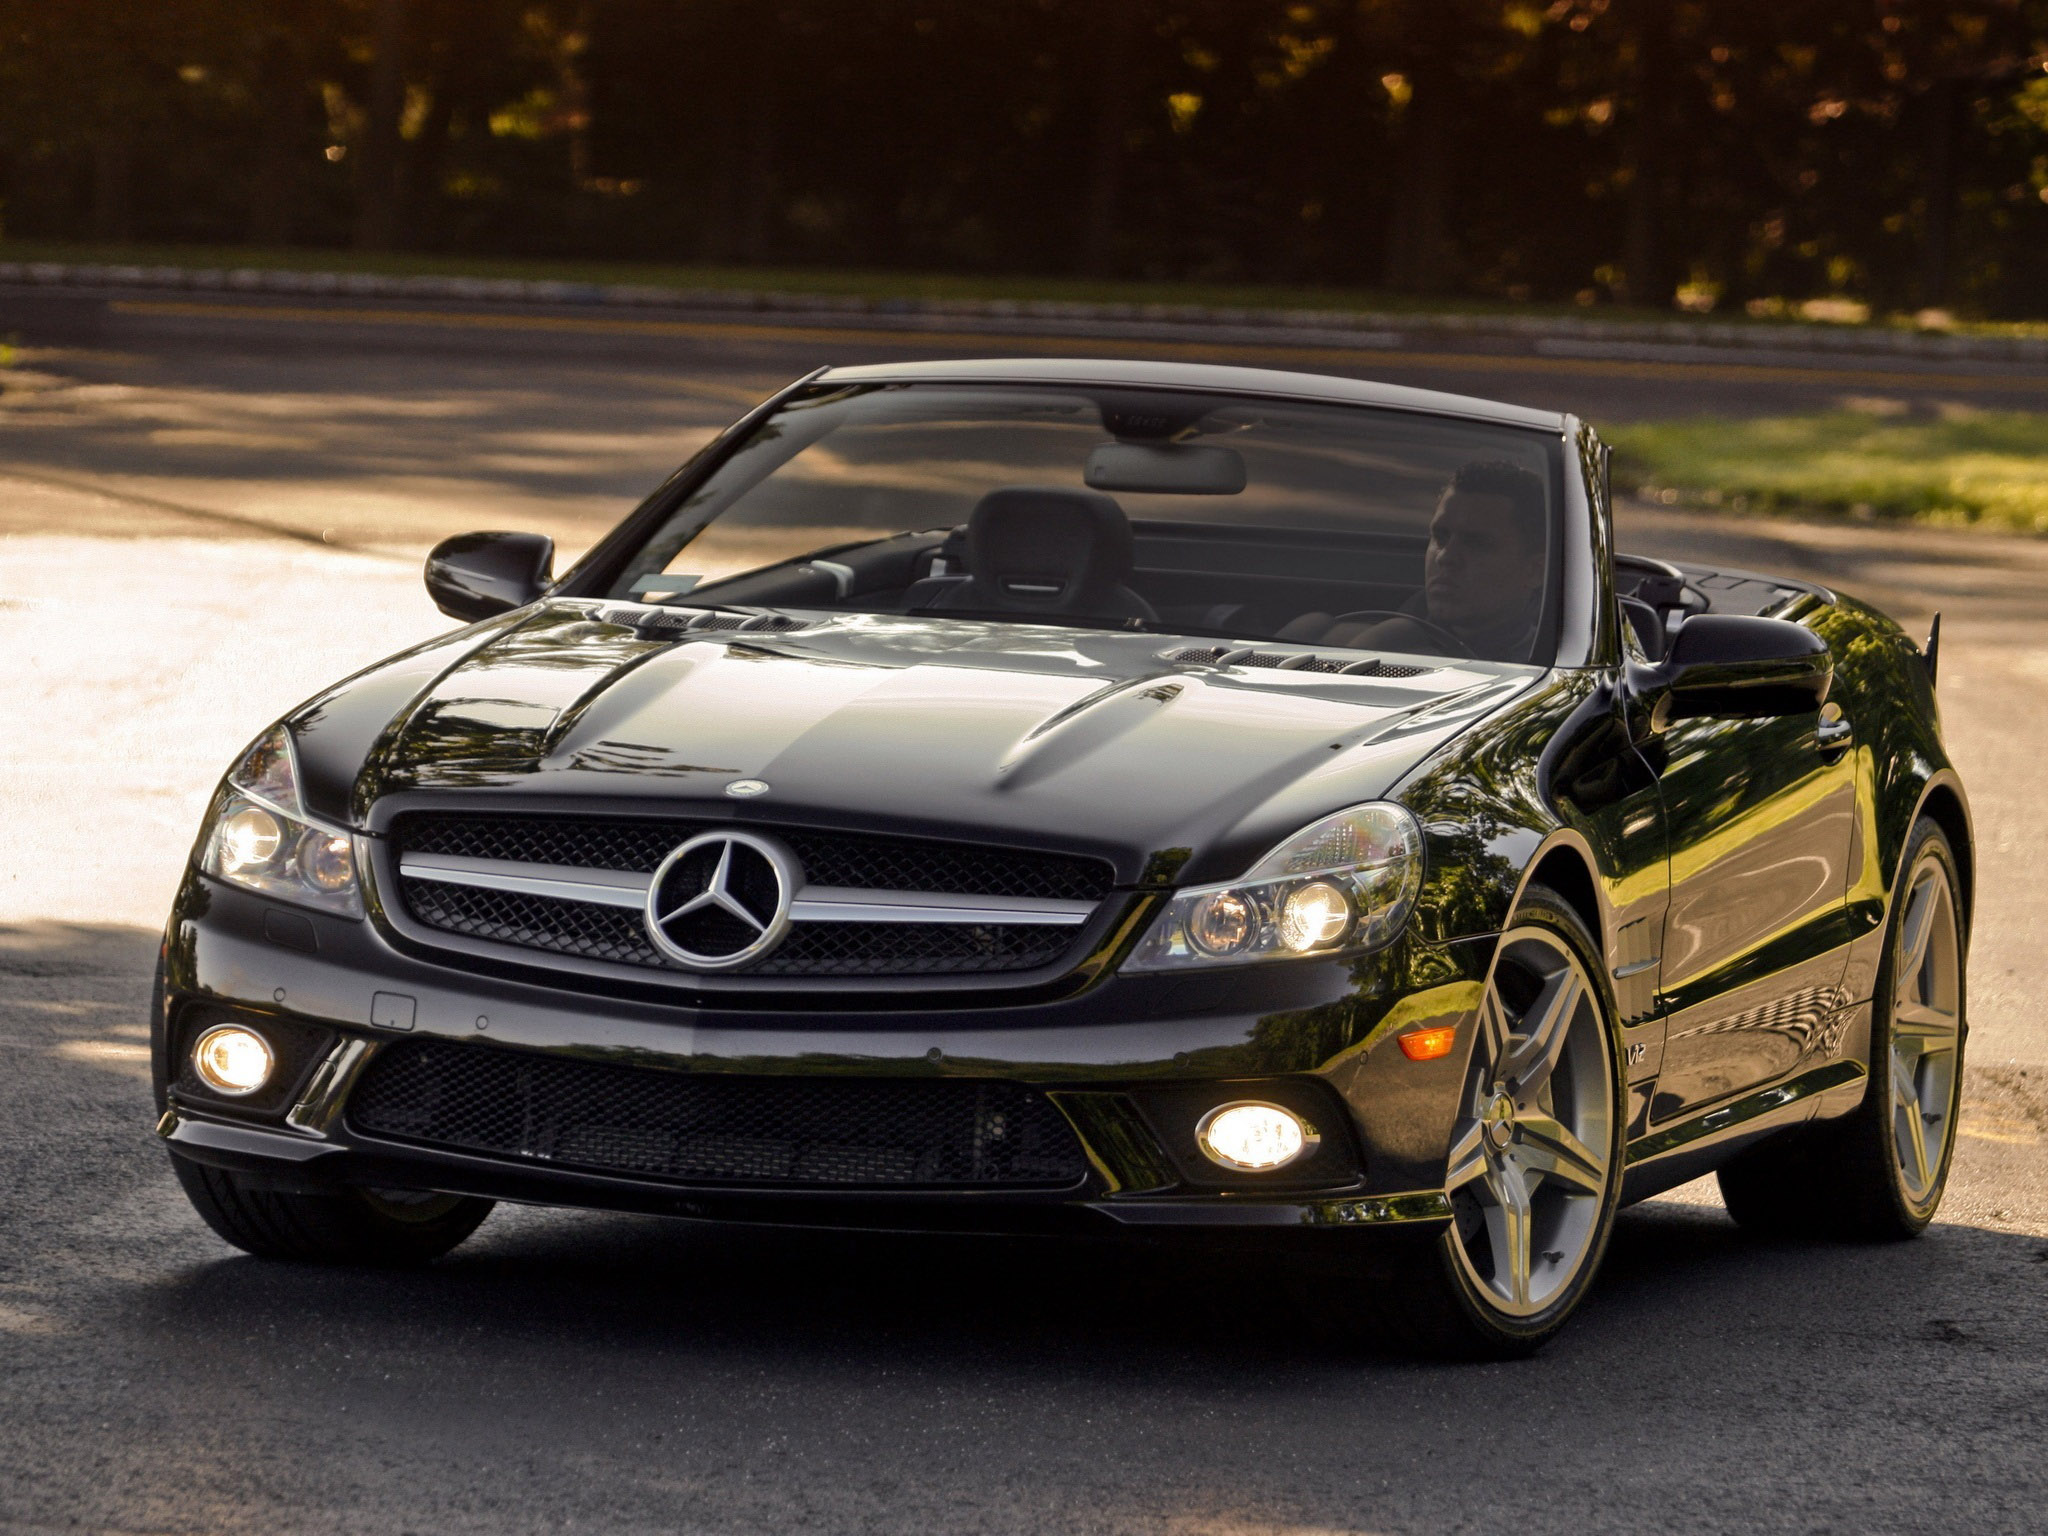 mercedes sl klasse 600 r230 usa 2008 mercedes sl klasse. Black Bedroom Furniture Sets. Home Design Ideas